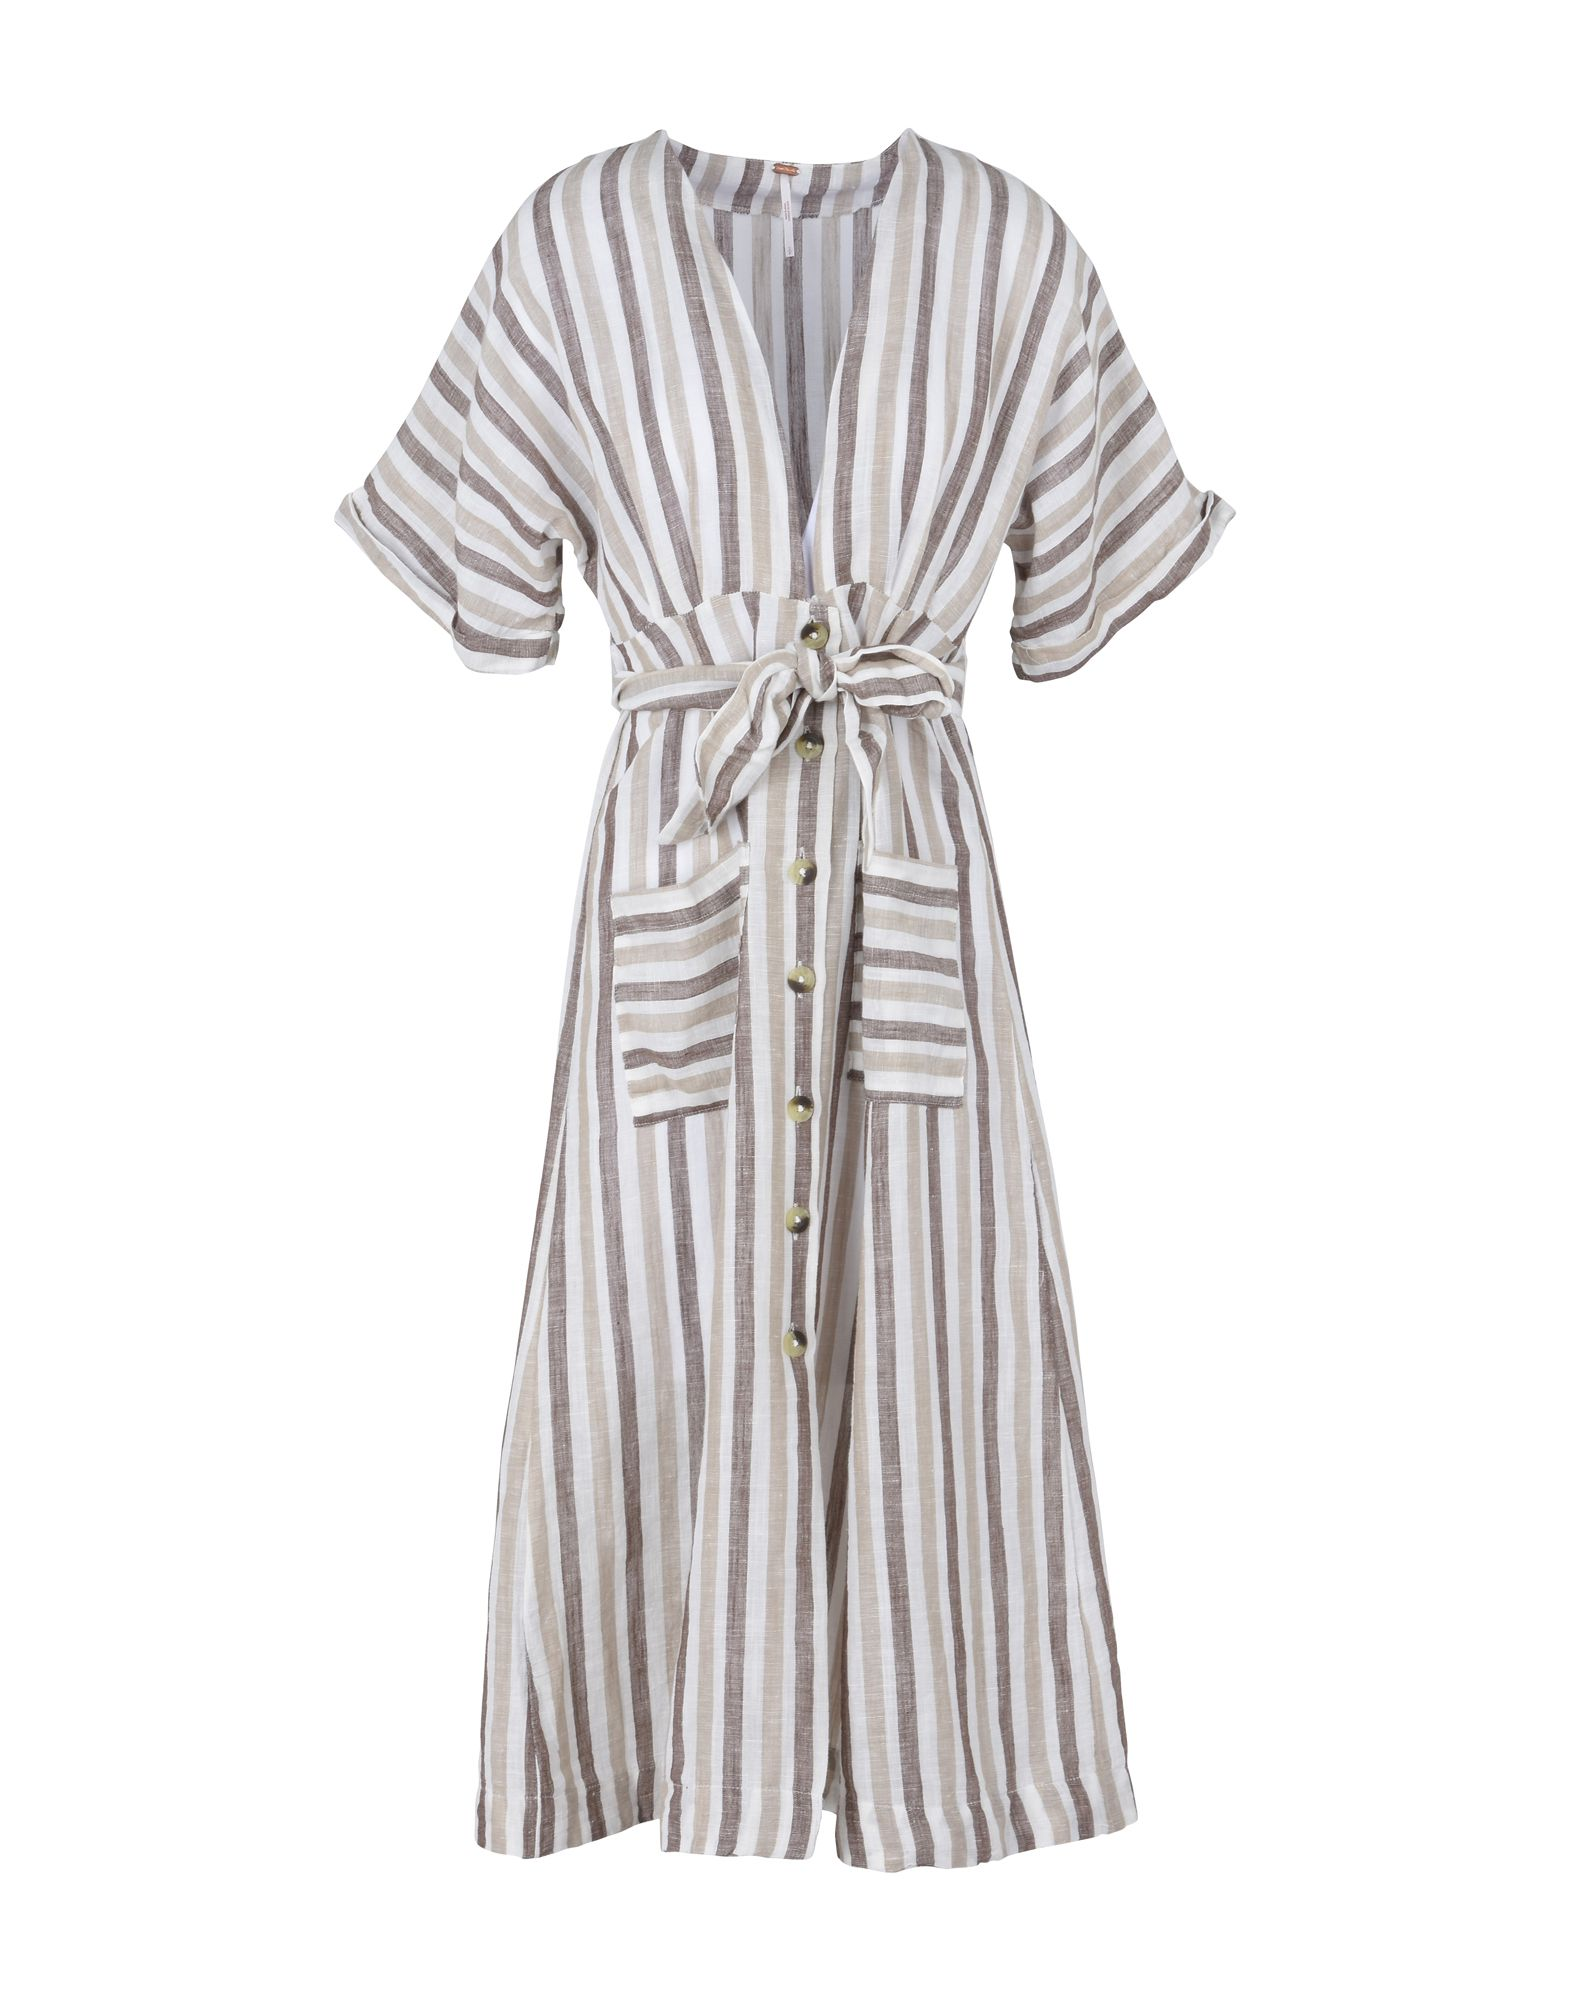 Linen Dresses for Women -Spring-Summer and Fall-Winter Collections  Collections | YOOX